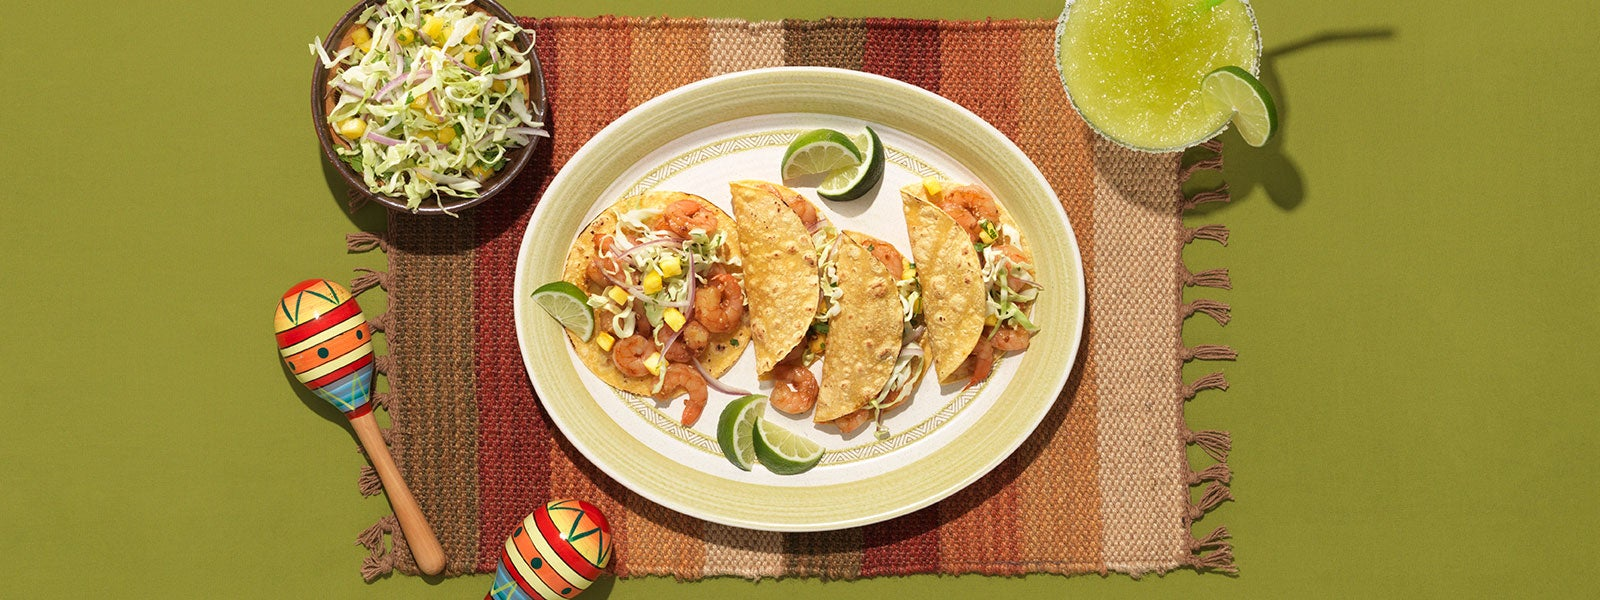 Island Shrimp Tacos with Cabbage & Pineapple Slaw